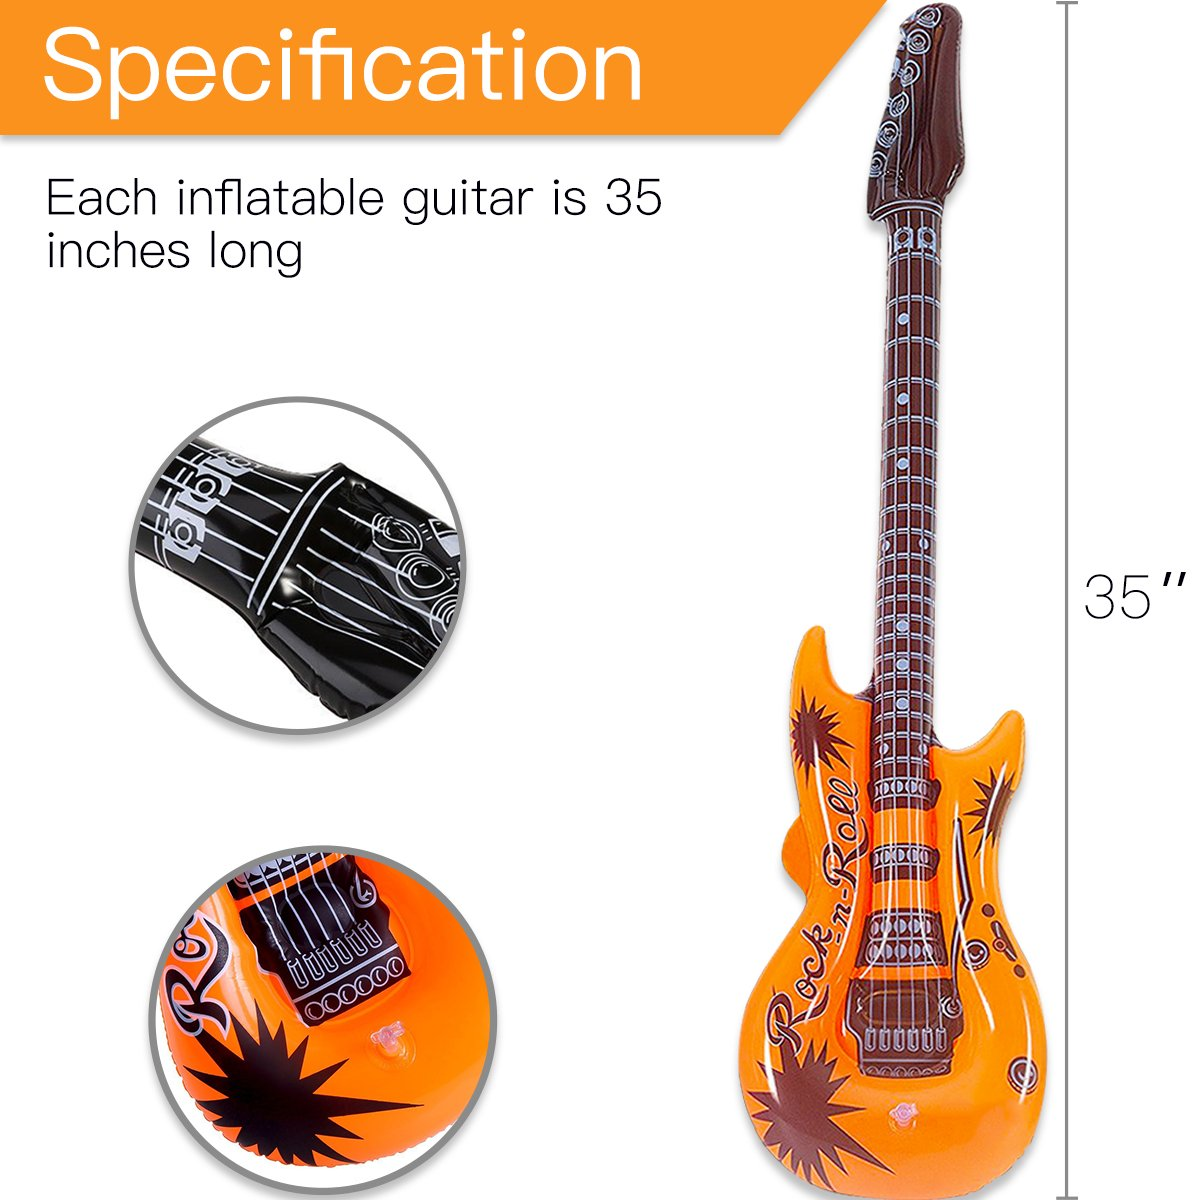 Novelty Place Inflatable Guitar Set for Kids & Adults, 35 Inches (Pack of 12) by Novelty Place (Image #4)